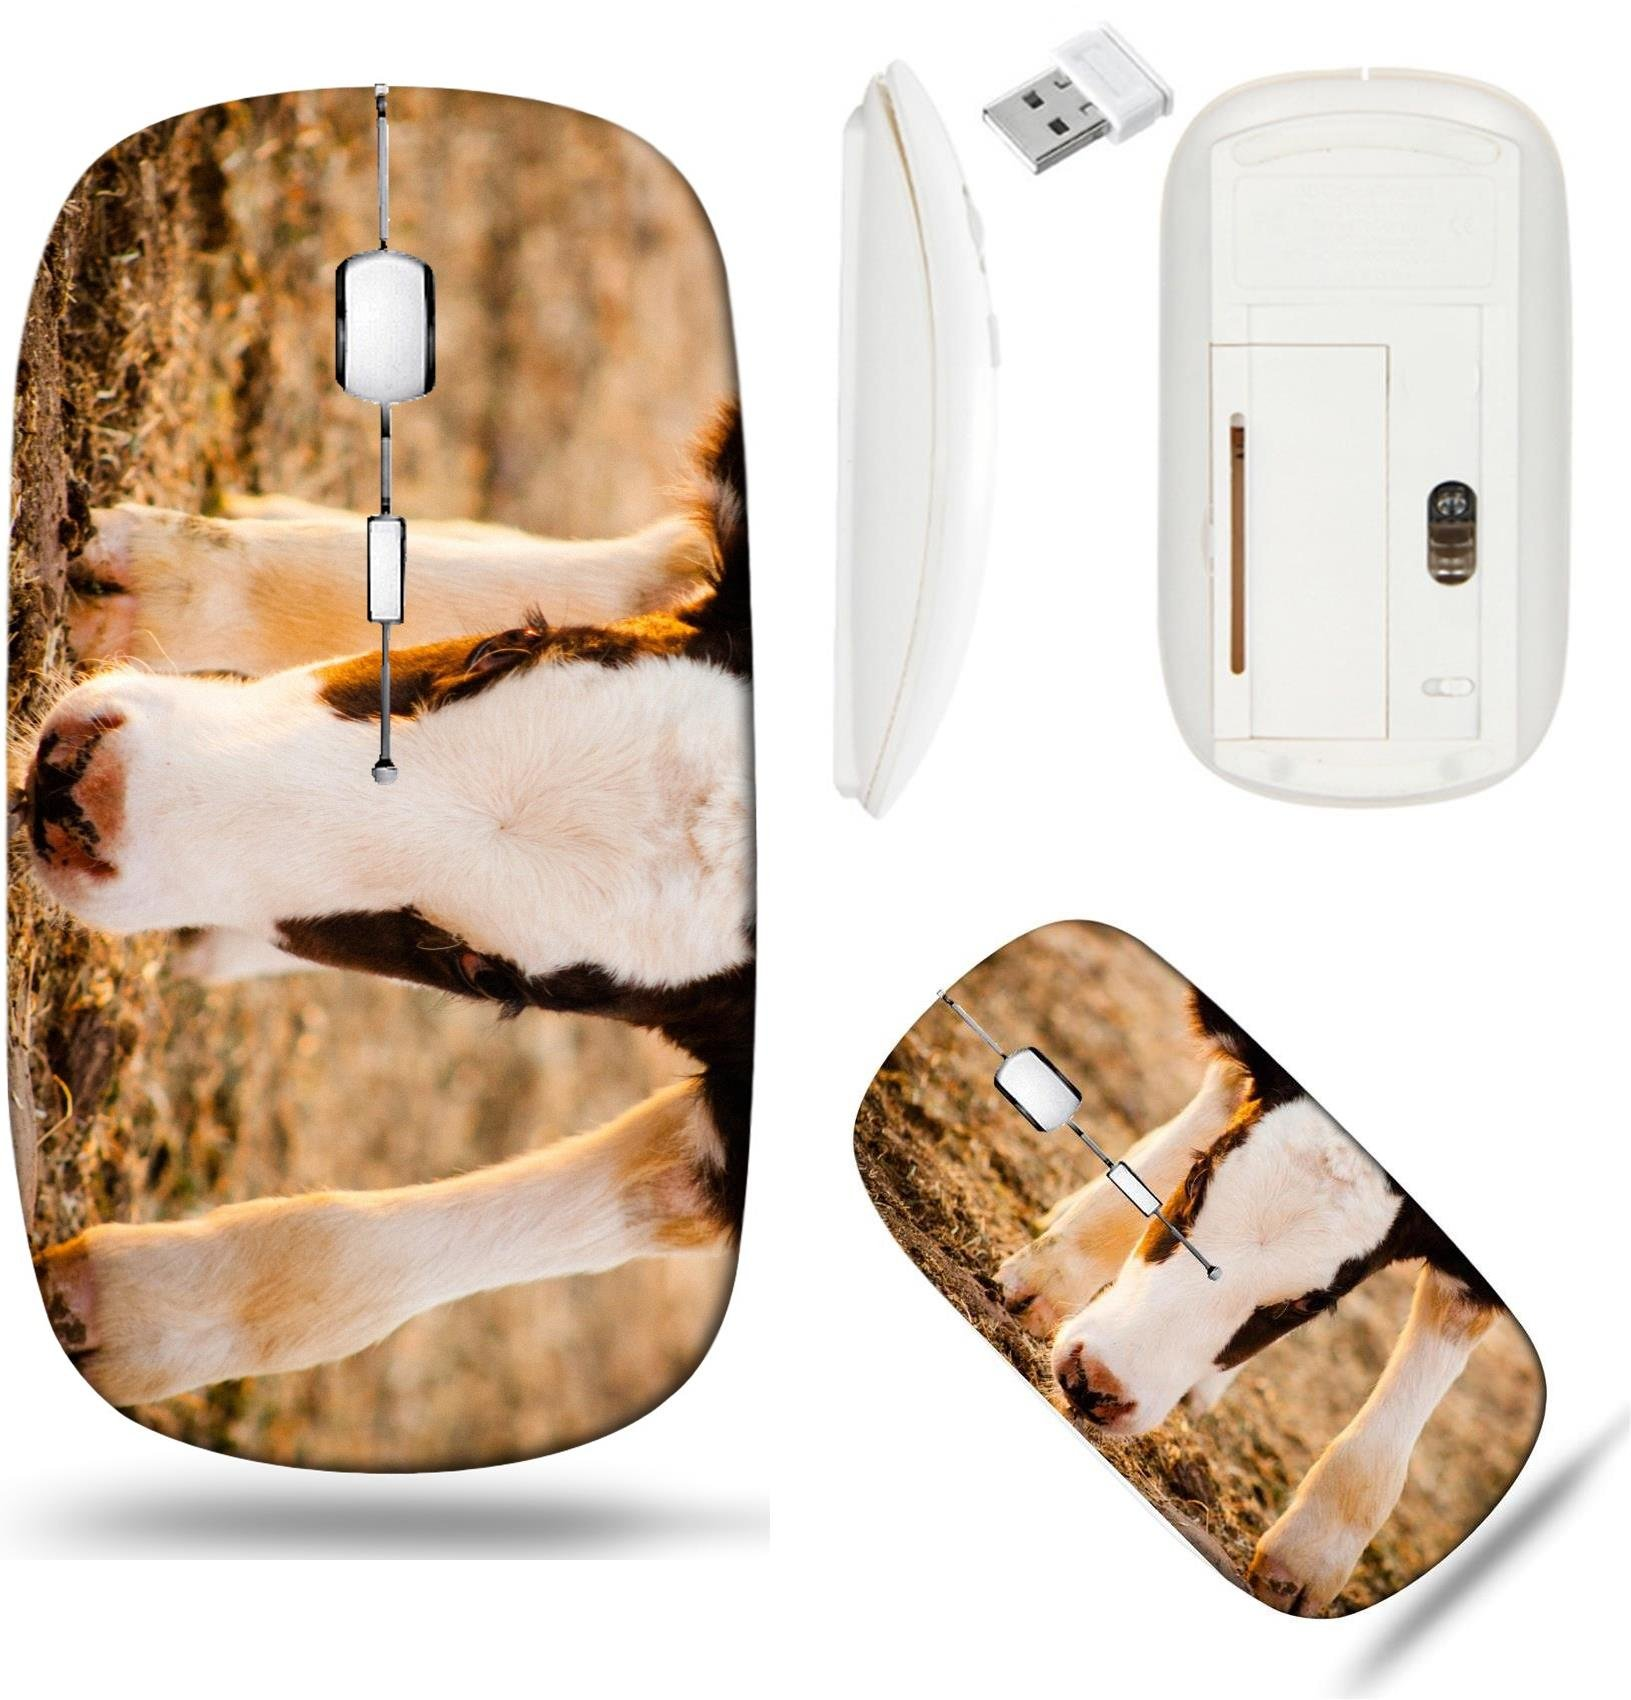 Liili Wireless Mouse White Base Travel 2.4G Wireless Mice with USB Receiver, Click with 1000 DPI for notebook, pc, laptop, computer, mac book Newborn calf cow watching at the camera Photo 20944614